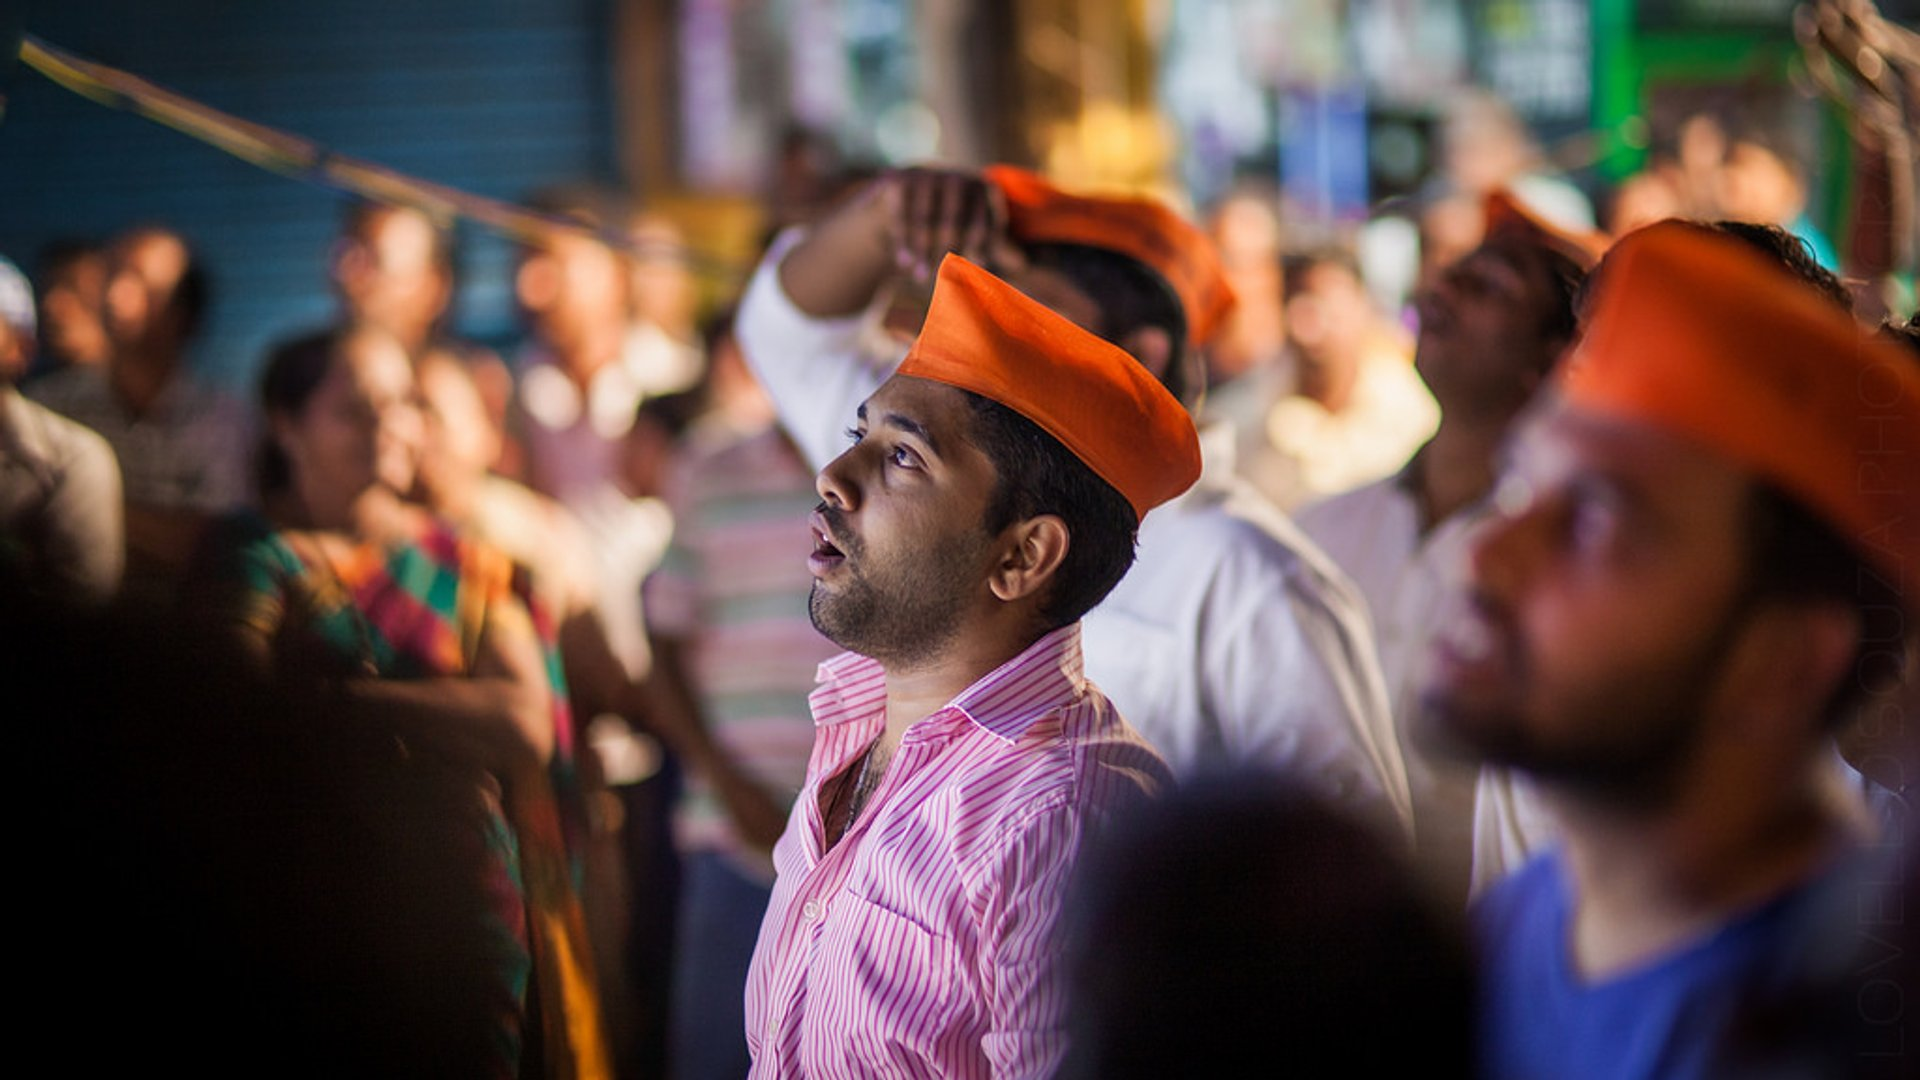 An awe-struck reveller looks at Lord Ganesh at the Mapusa Market 2020